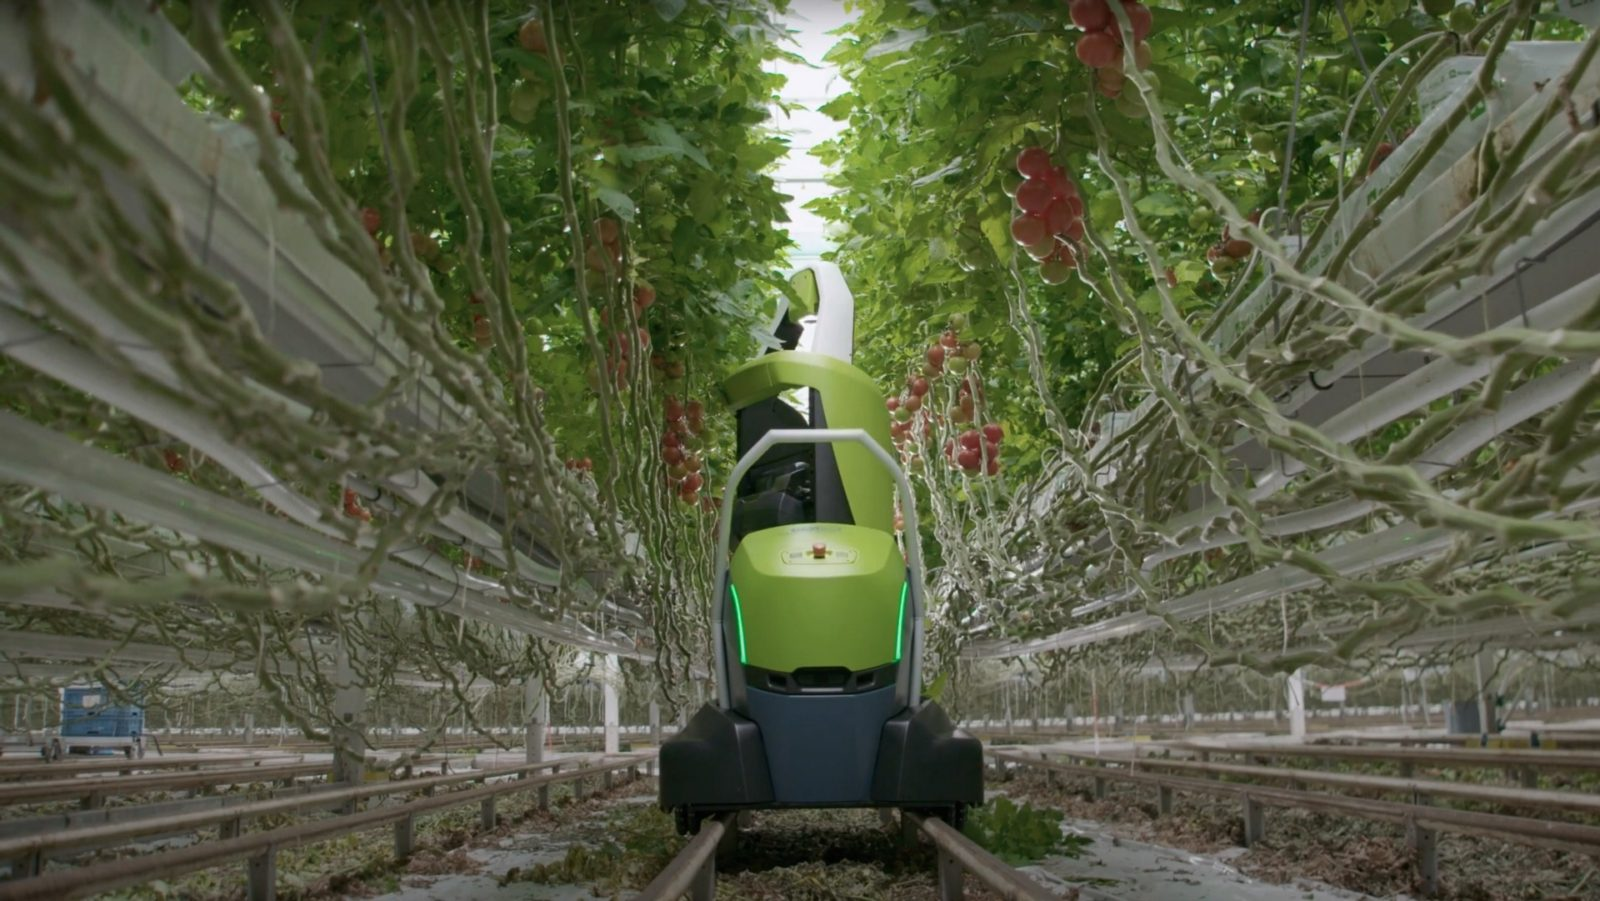 leaf-cutting-autonomous-robot-can-operate-24/7,-promises-over-85-percent-accuracy